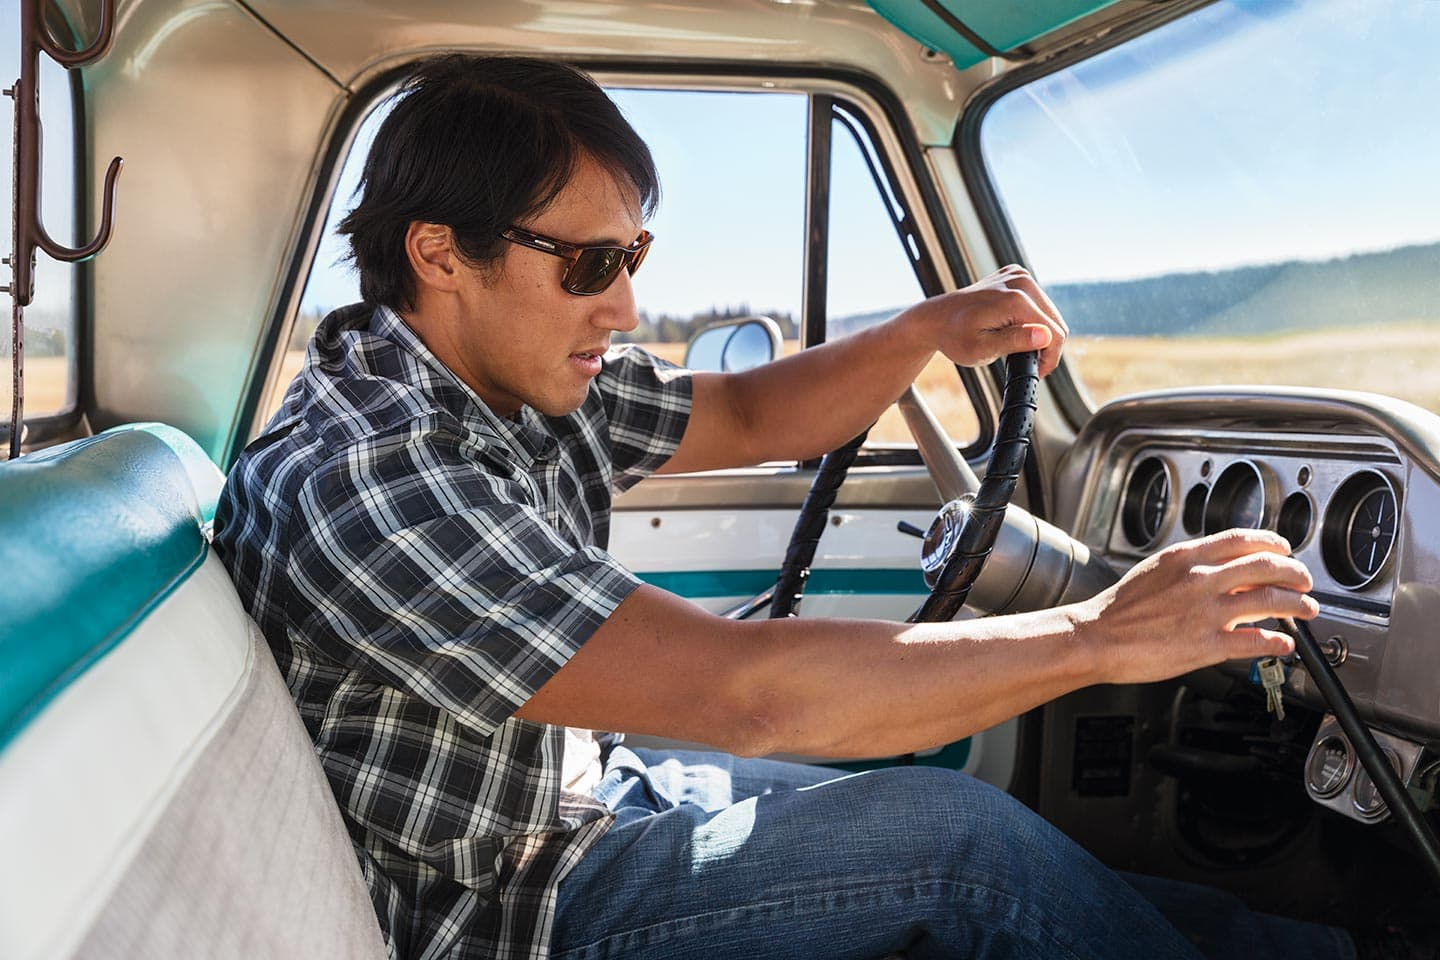 Portrait of Man in Sunglasses Driving Truck Sunny Day